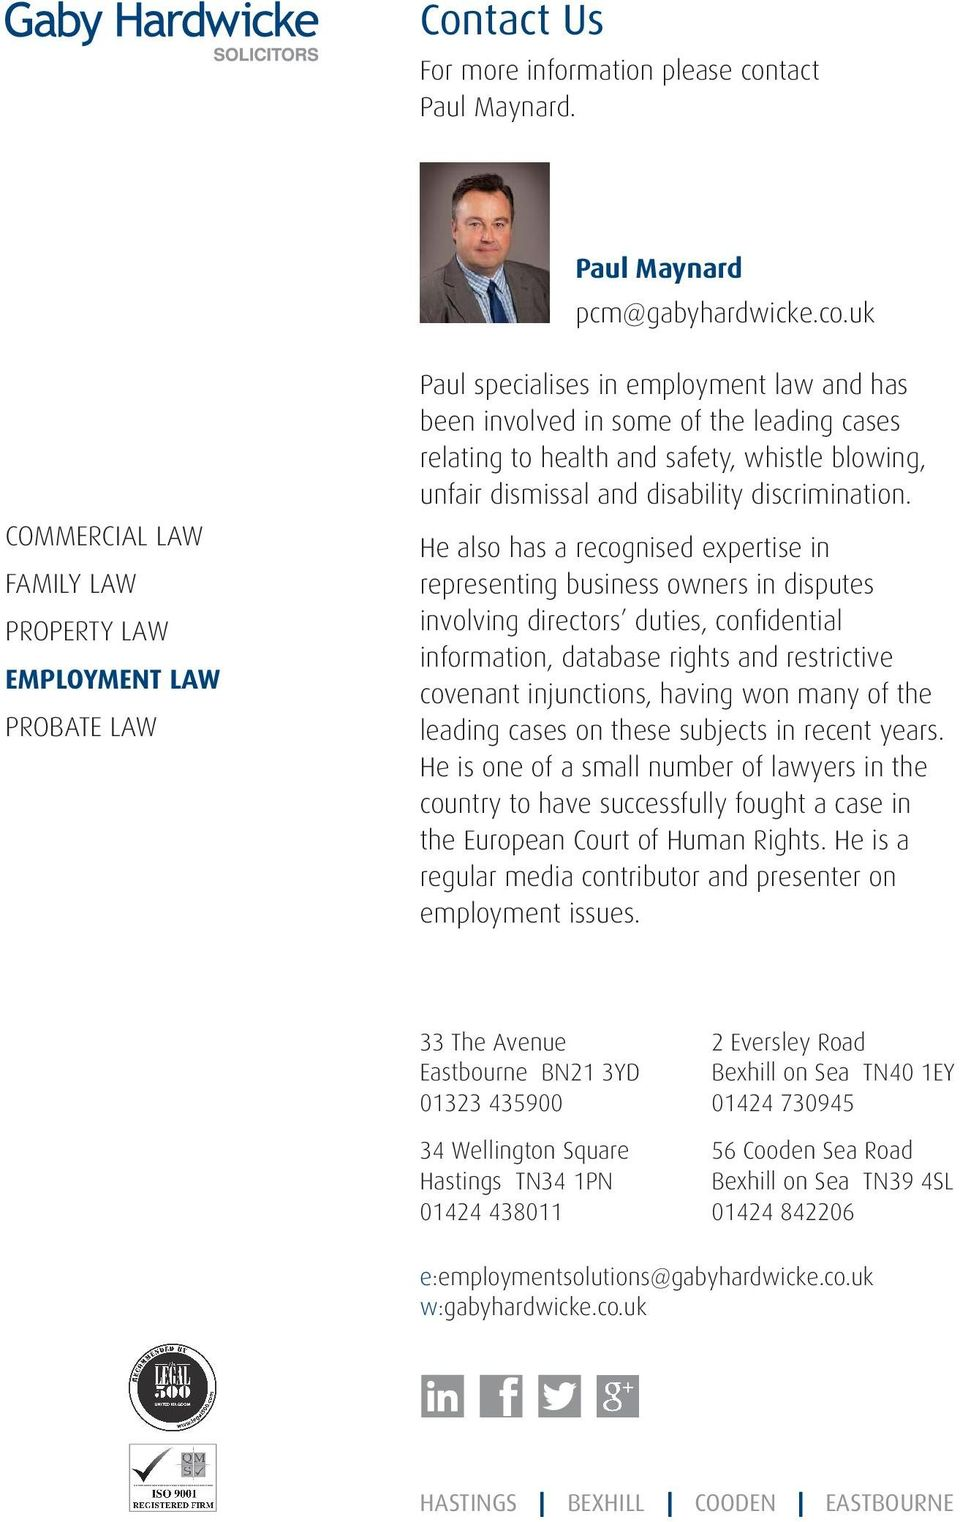 uk COMMERCIAL LAW FAMILY LAW PROPERTY LAW EMPLOYMENT LAW PROBATE LAW Paul specialises in employment law and has been involved in some of the leading cases relating to health and safety, whistle